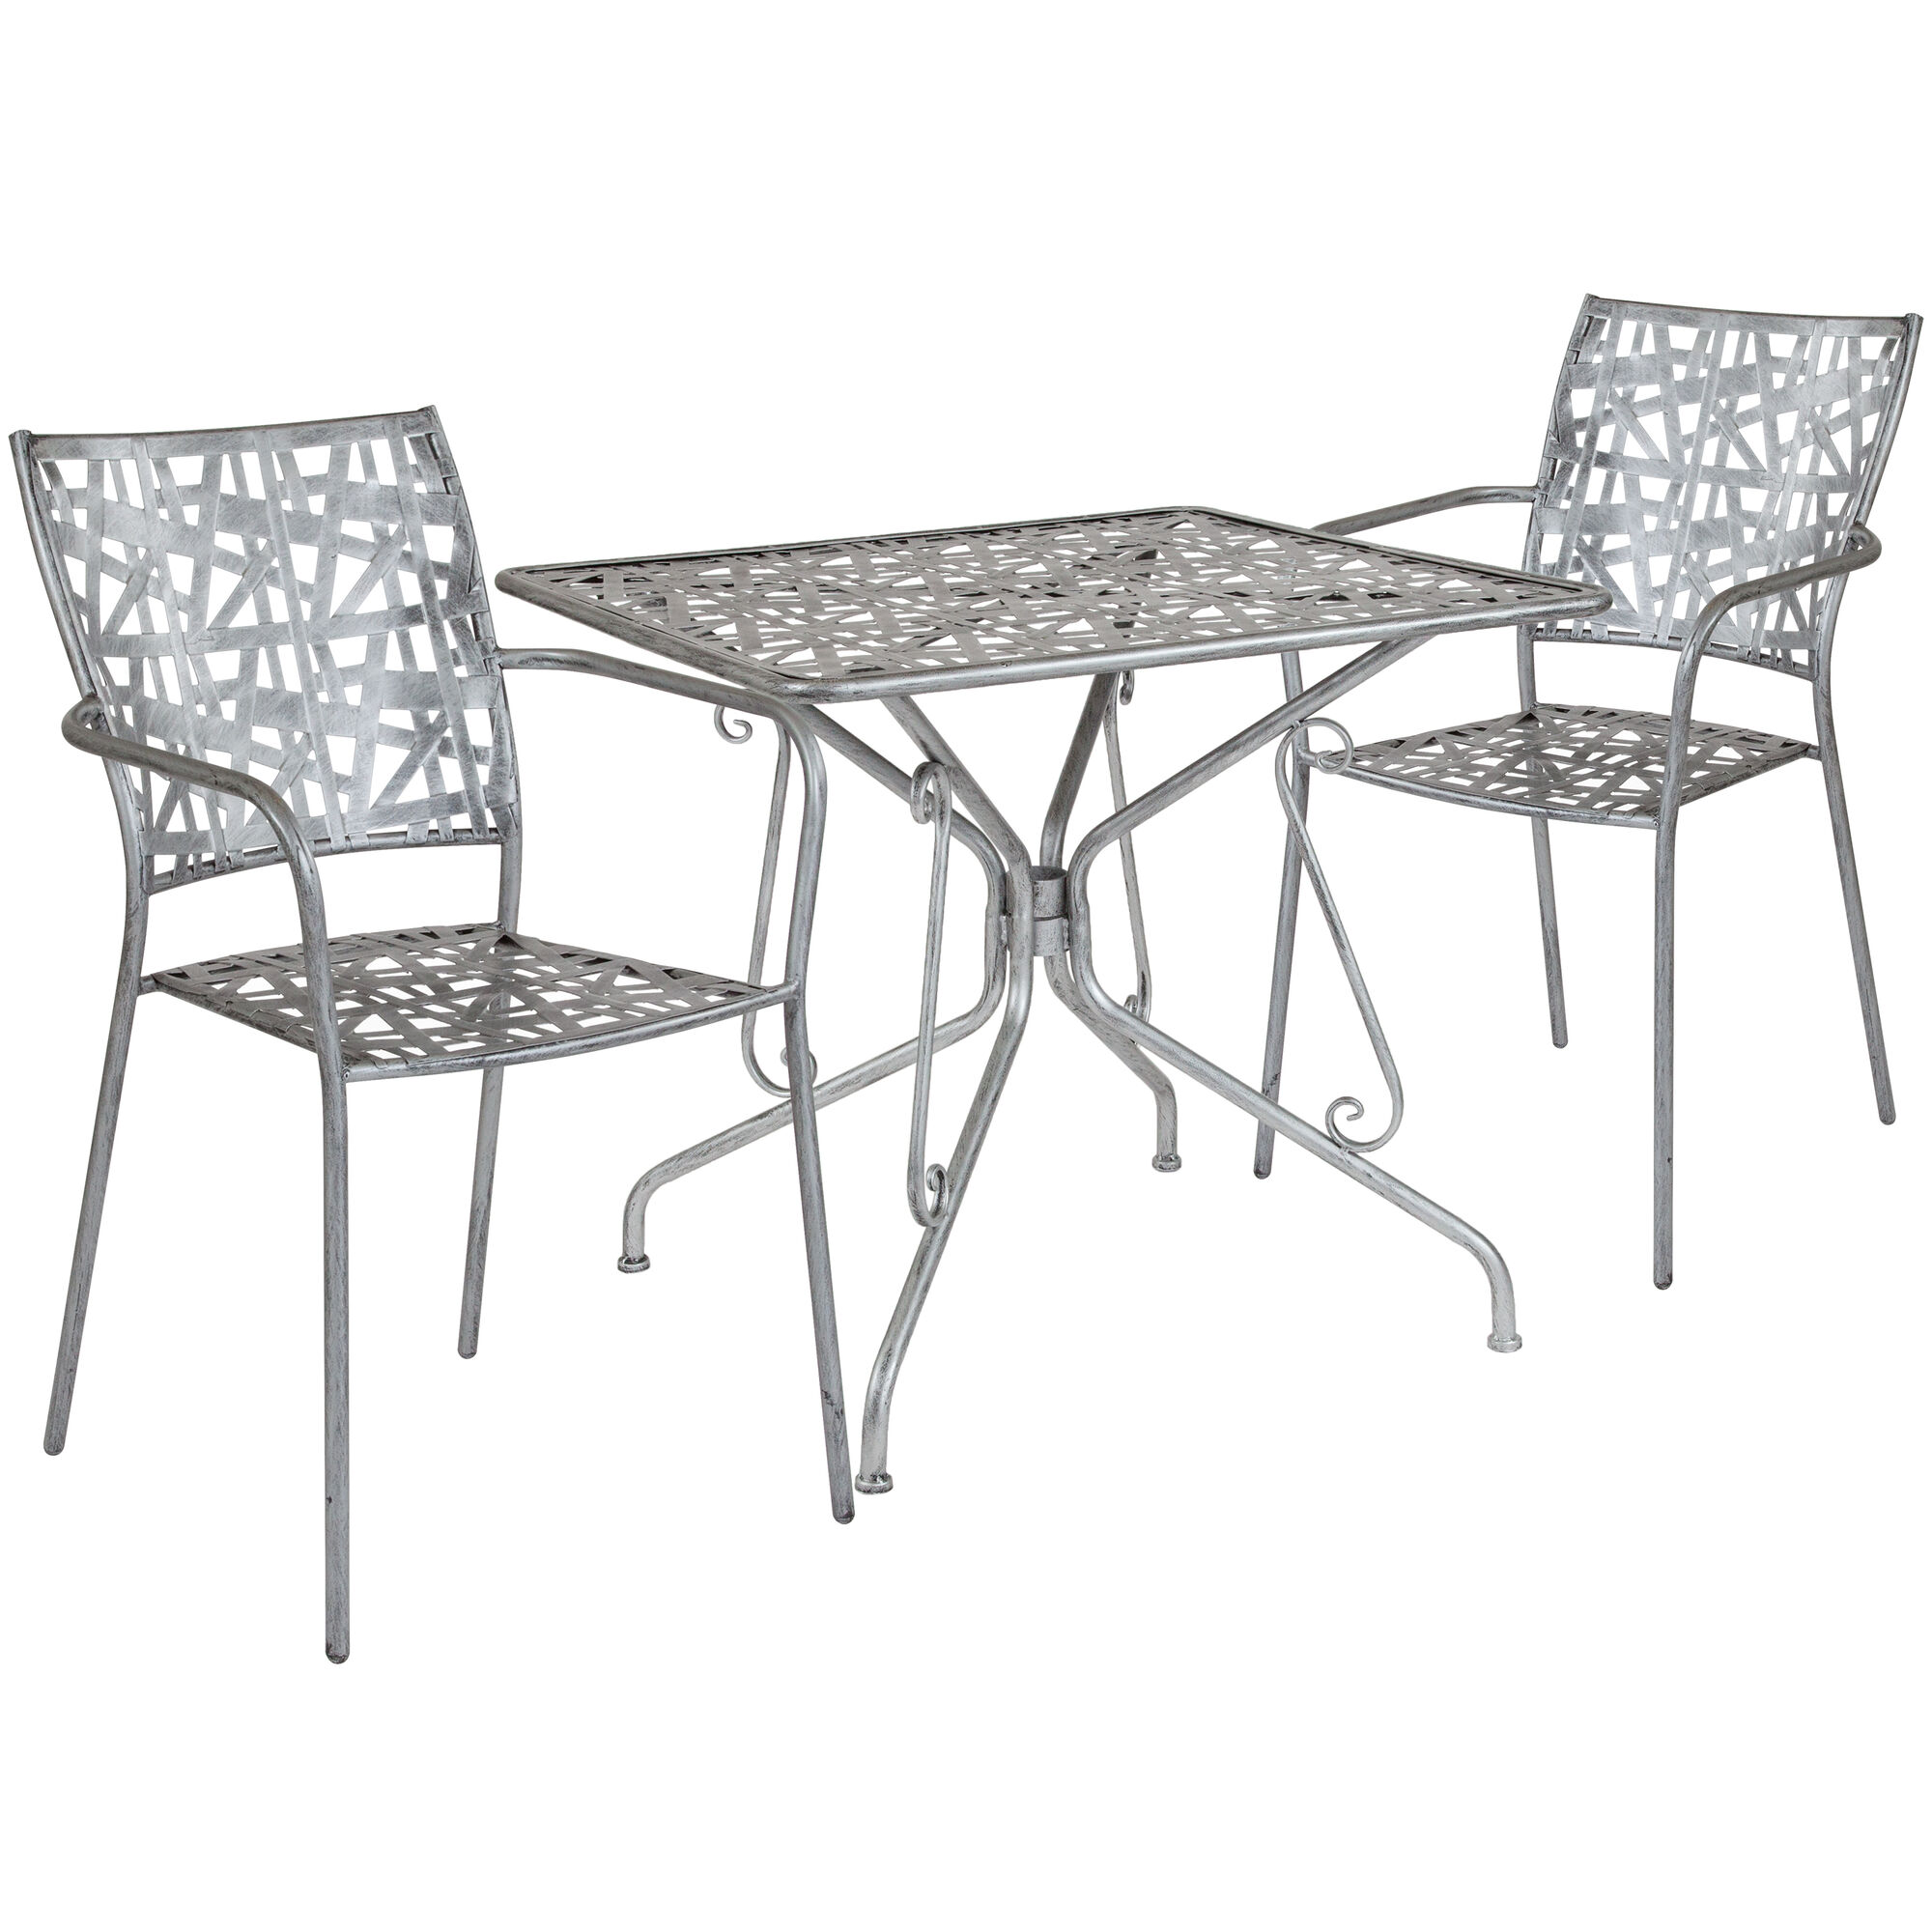 Silver Patio Furniture.Agostina Series 31 5 Square Antique Silver Indoor Outdoor Steel Patio Table With 2 Stack Chairs